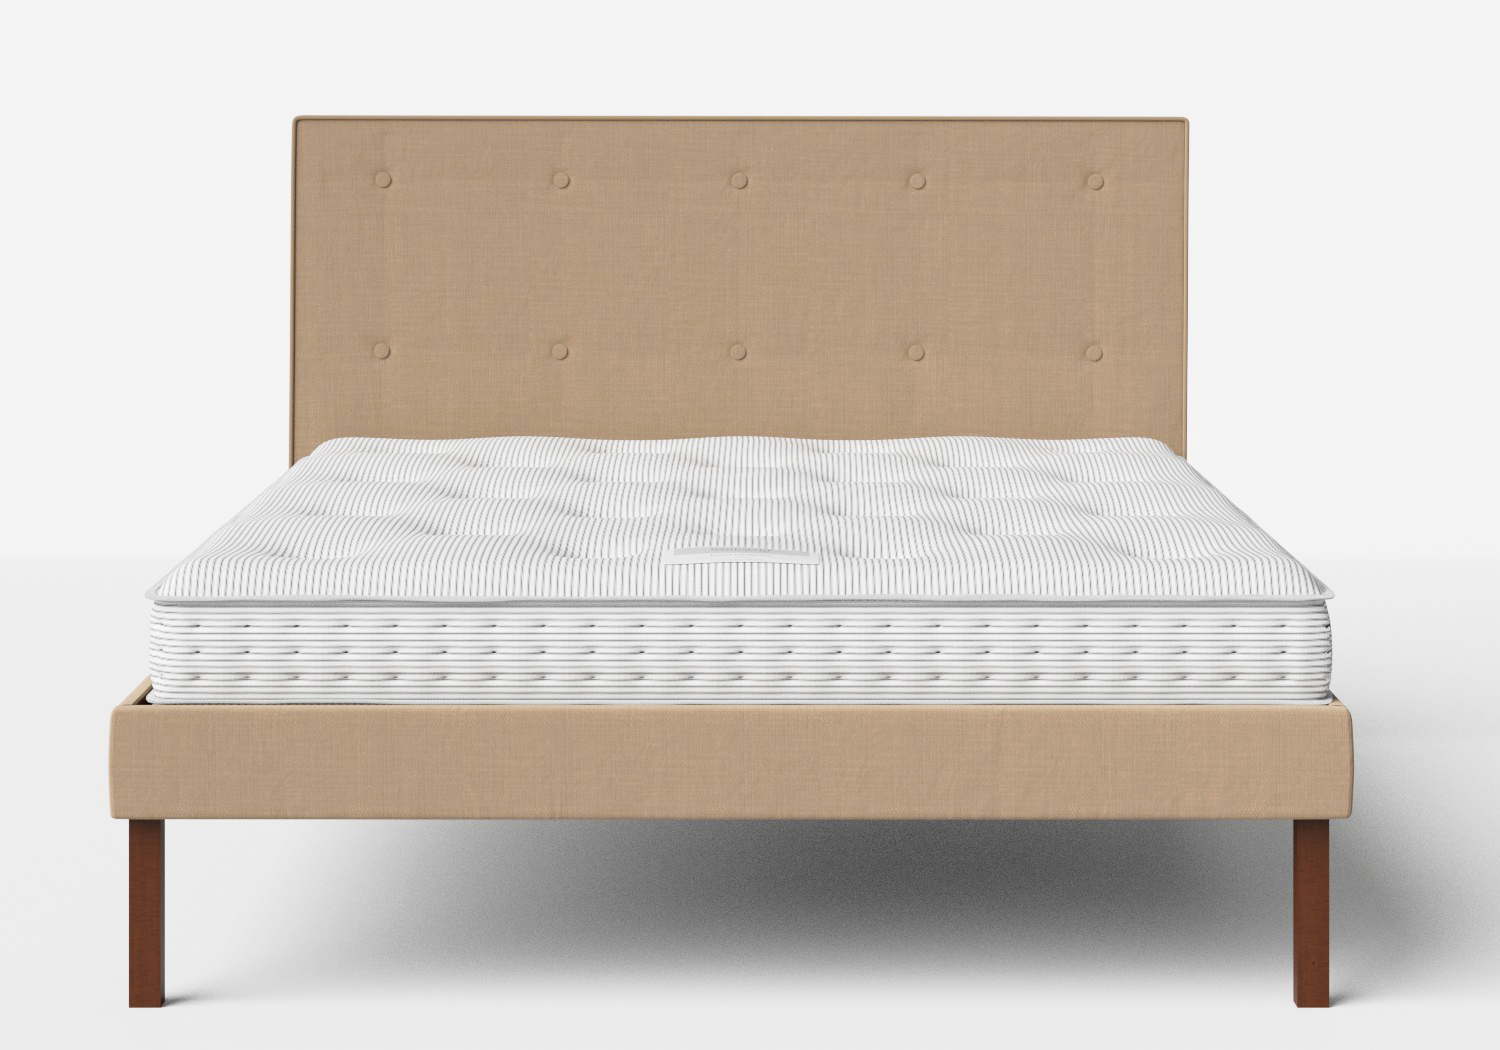 Misaki Upholstered Bed in Straw fabric with buttoning shown with Juno 1 mattress